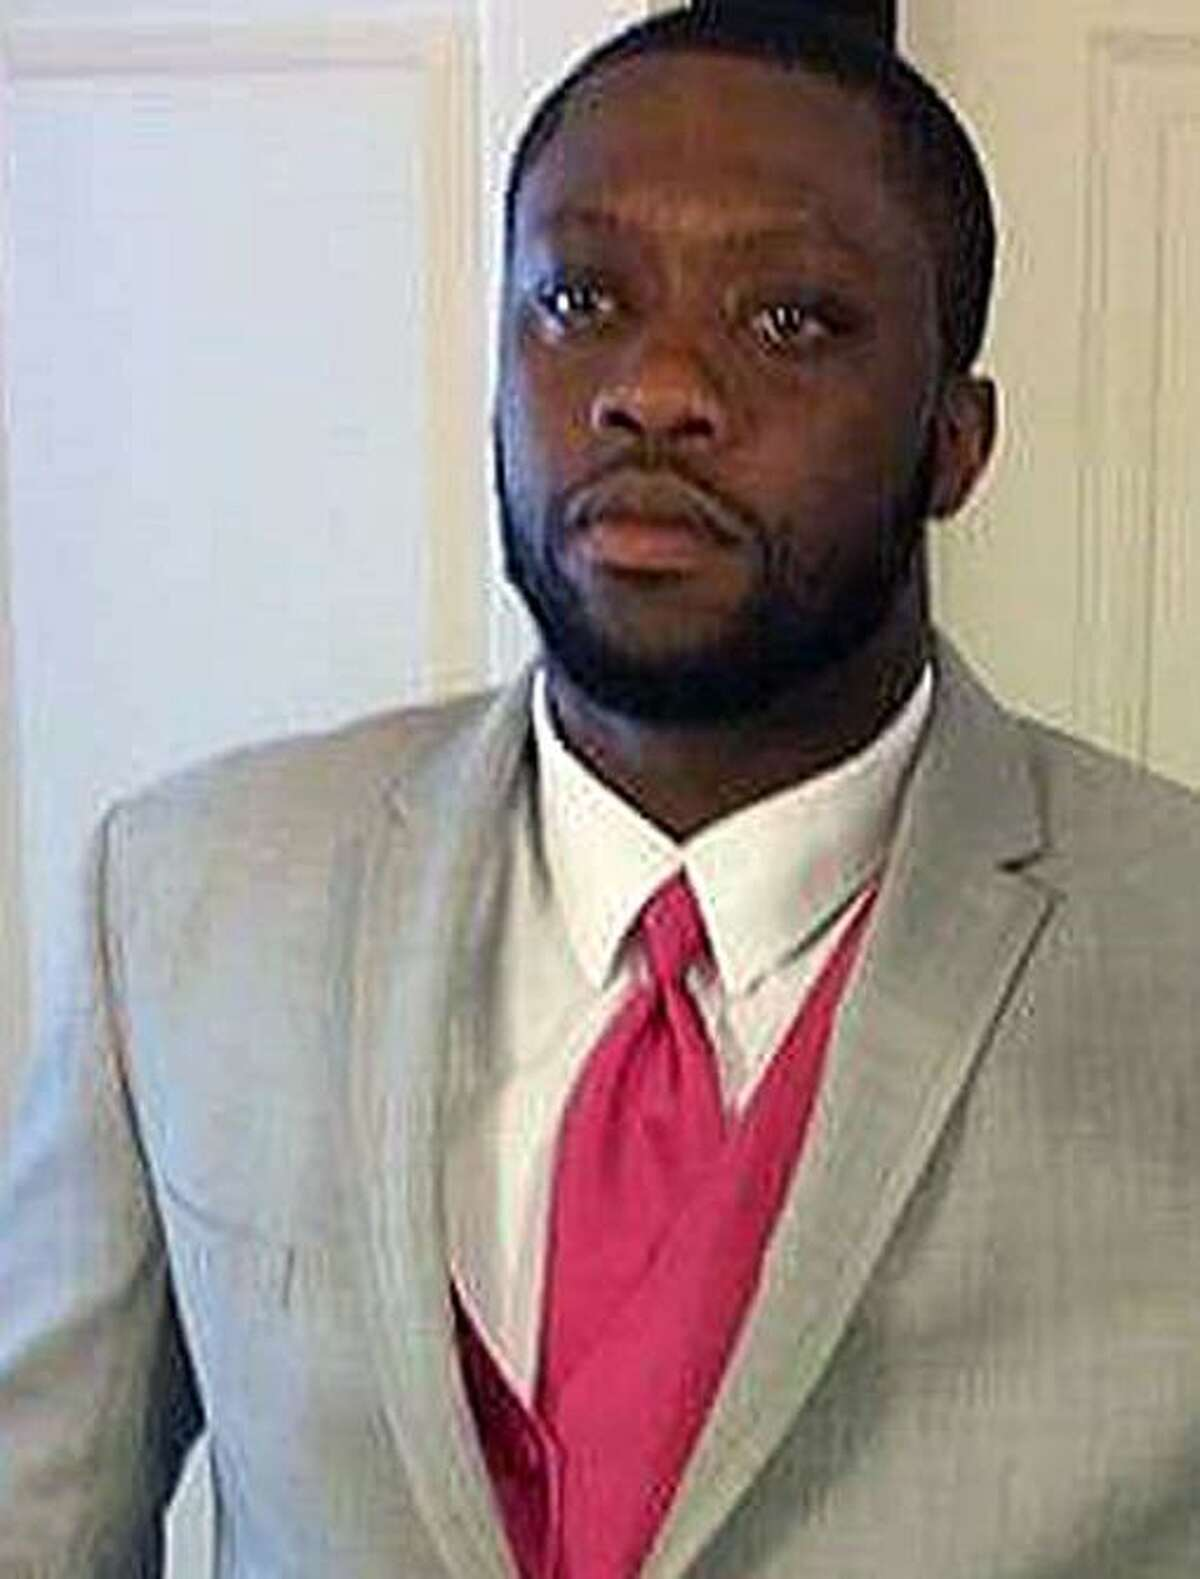 Cadell Moore, 34, of Connecticut Avenue in Bridgeport, Conn., was fatally shot Thursday, Aug. 24, 2017, while he worked on his car in front of houses in the 50 block of Sixth Street, police spokesman Av Harris said. He said police do not believe Moore was the intended target of the shooting.